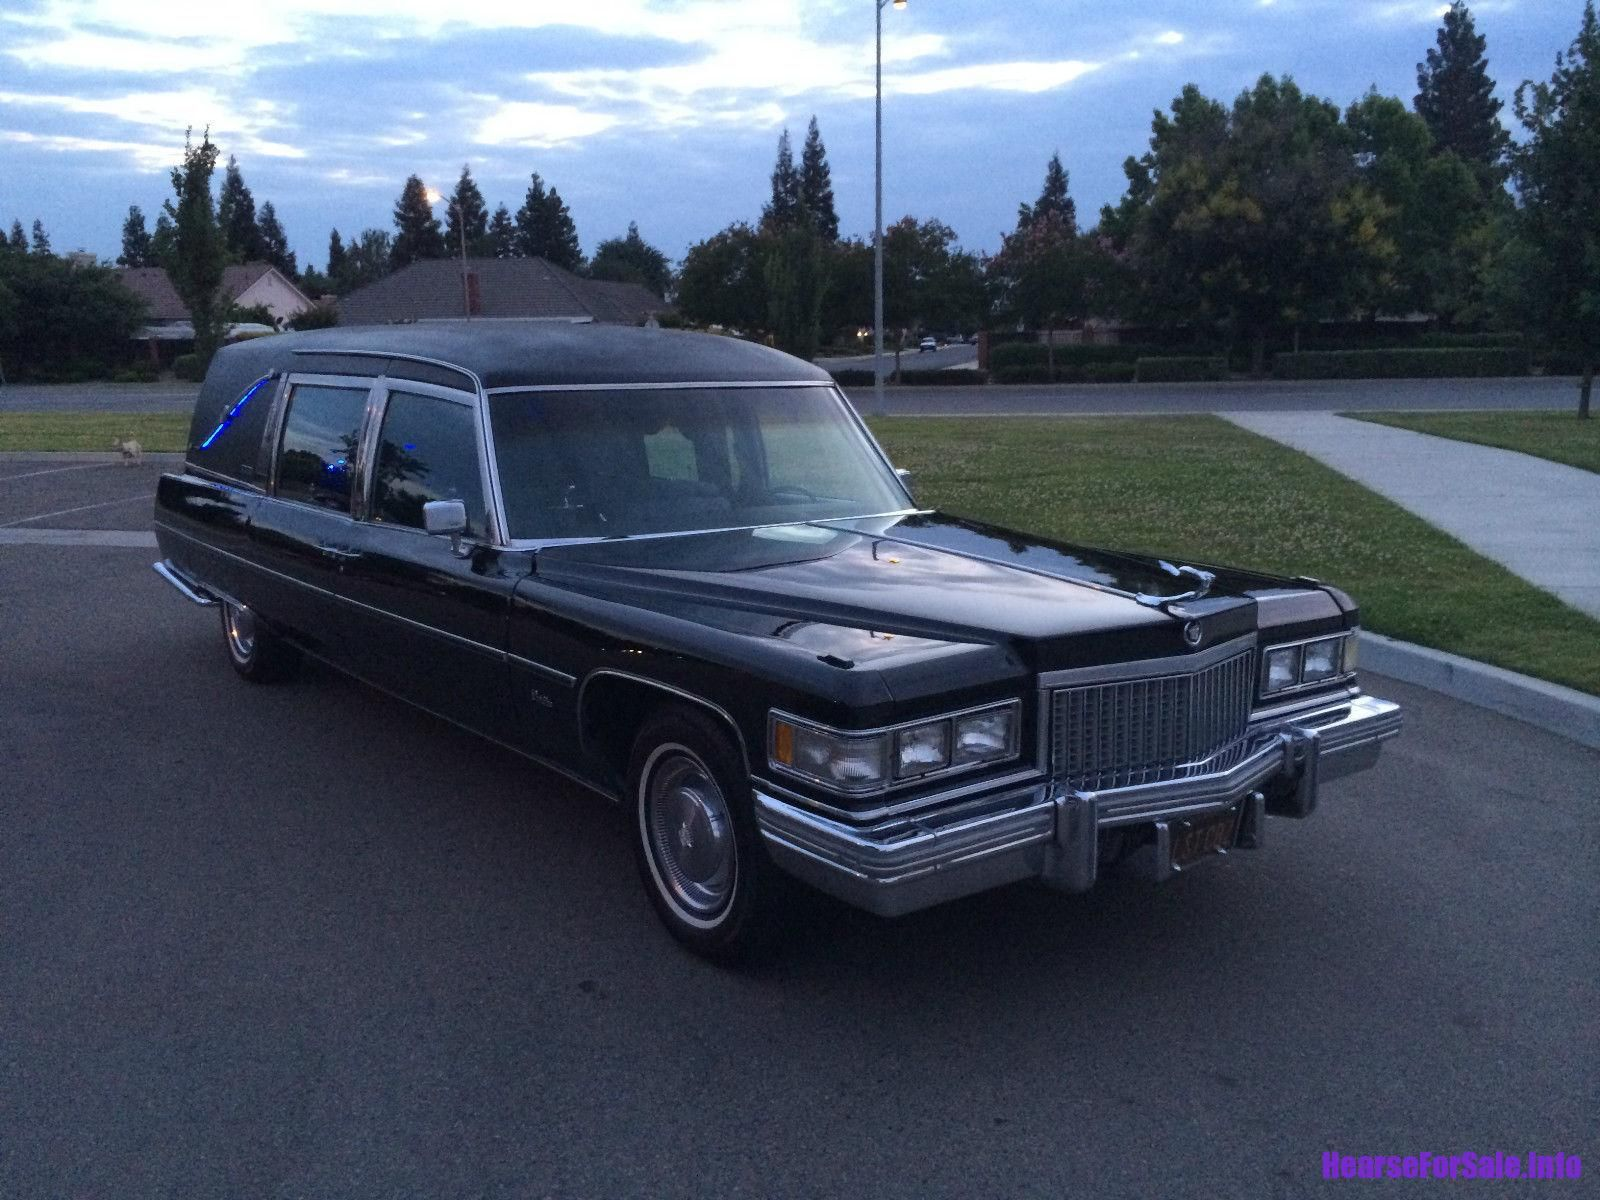 Pin on Hearses/Flower Cars